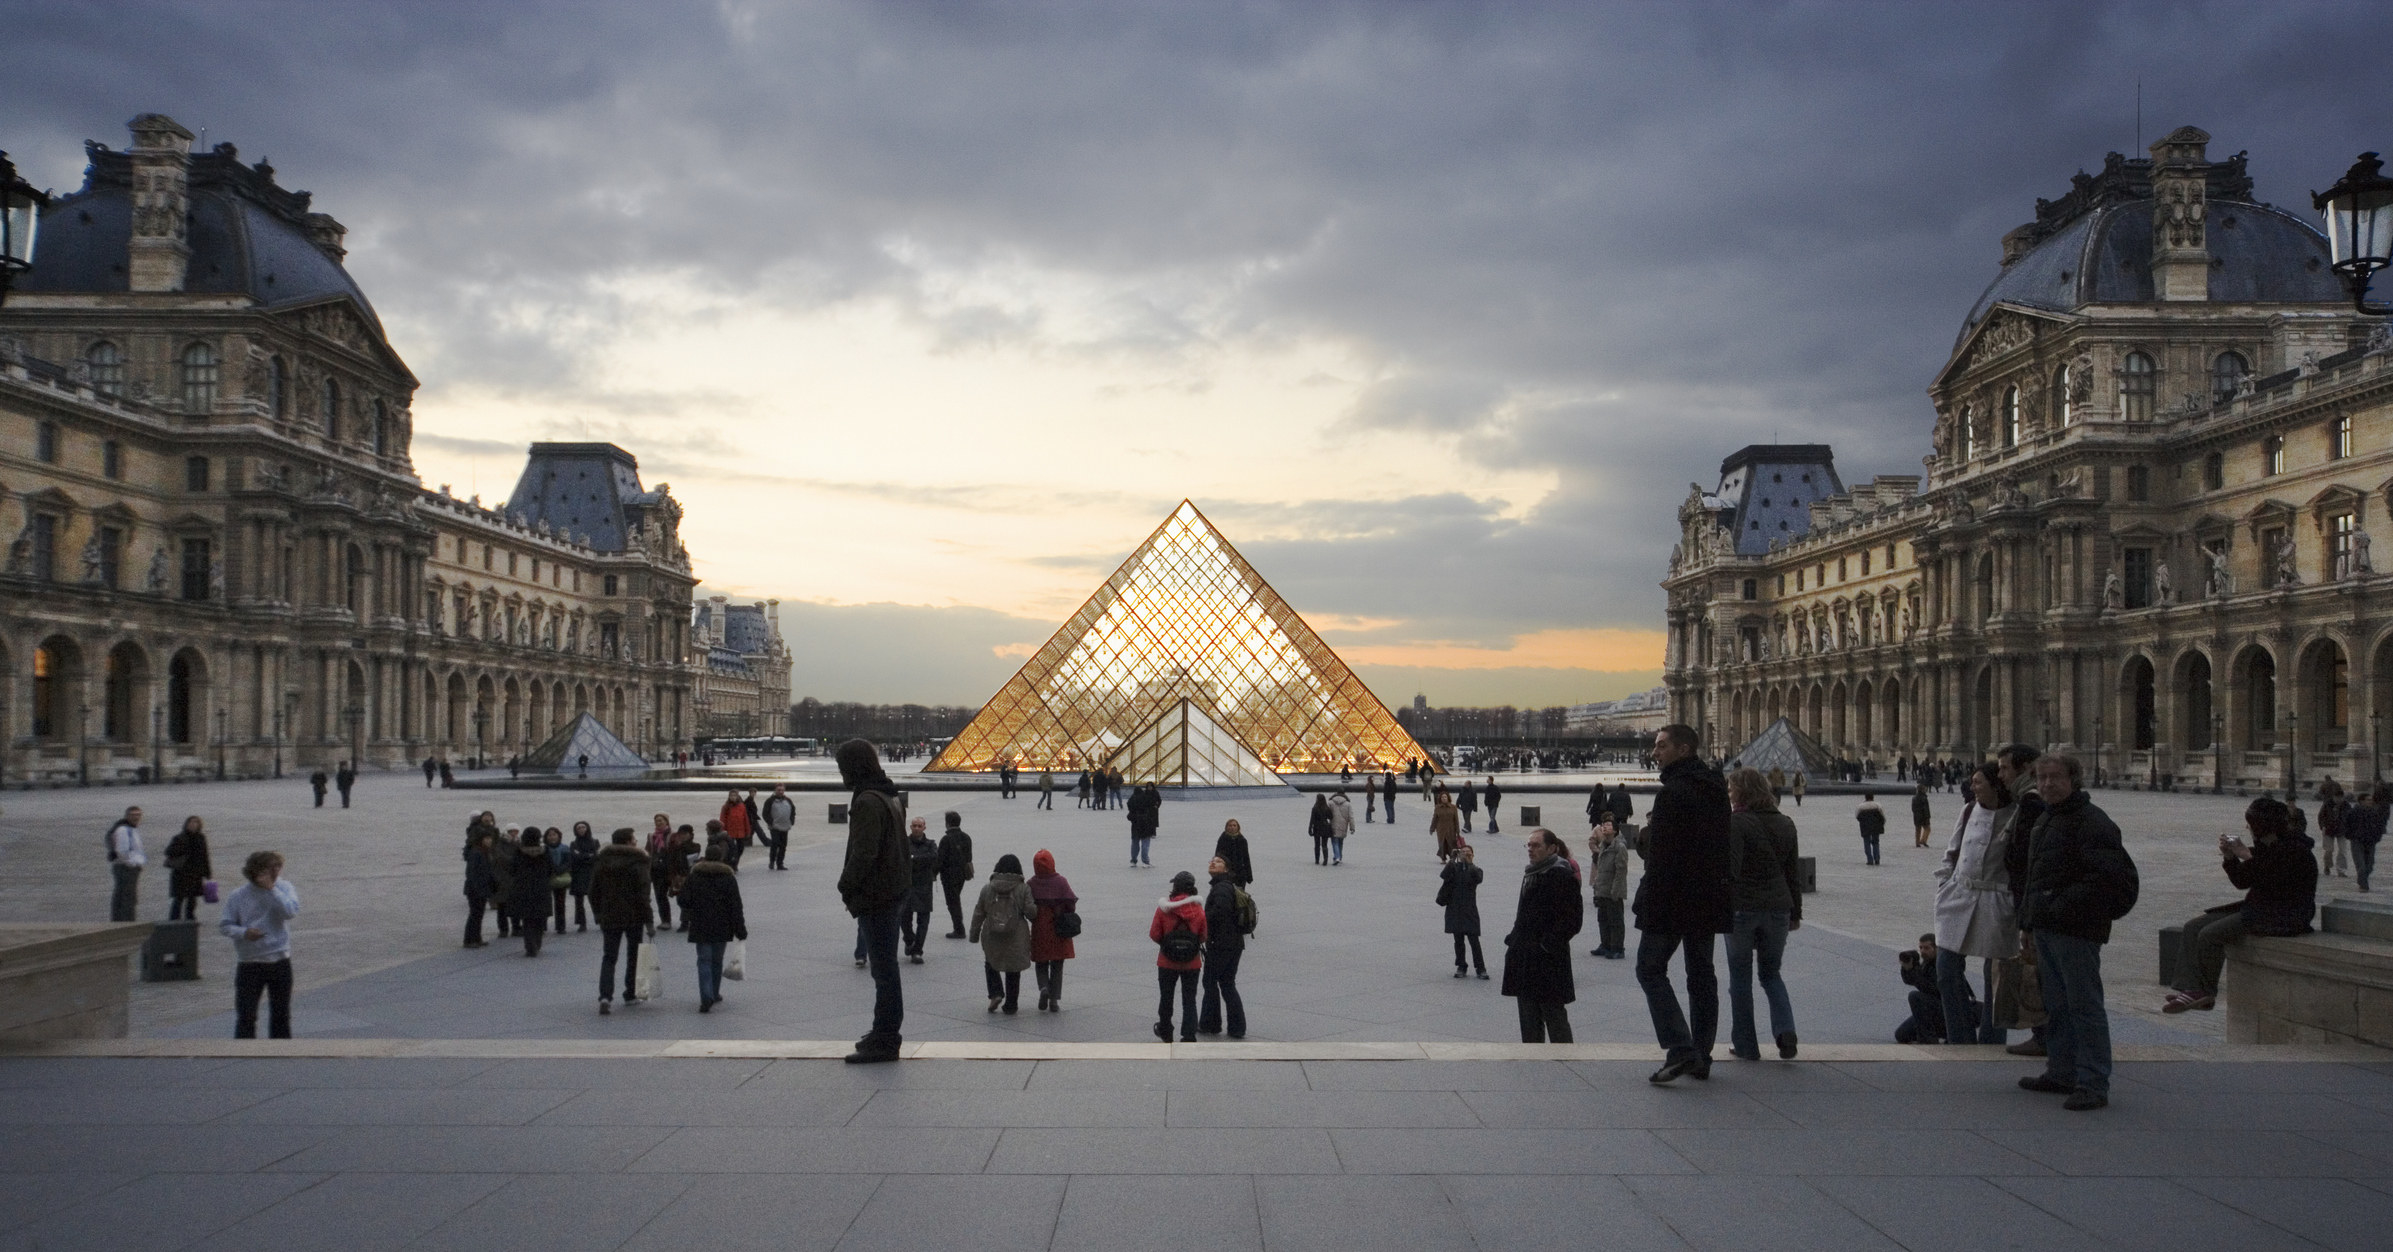 People waiting outside the Louvre in Paris